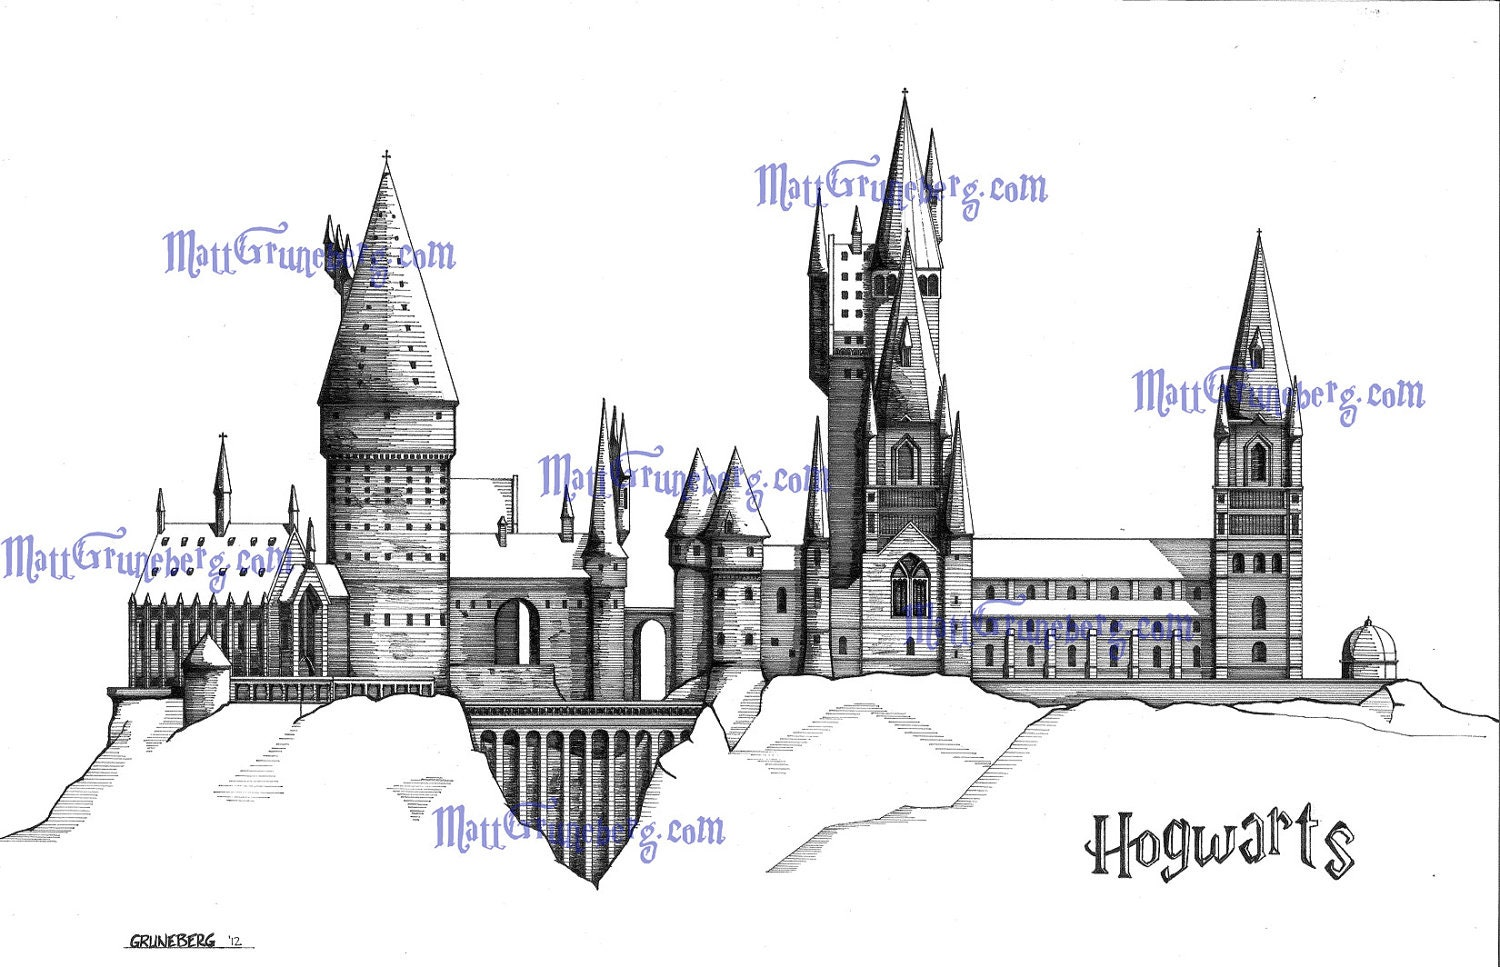 Hogwarts School Of Witchcraft And on 41 orthographic drawings